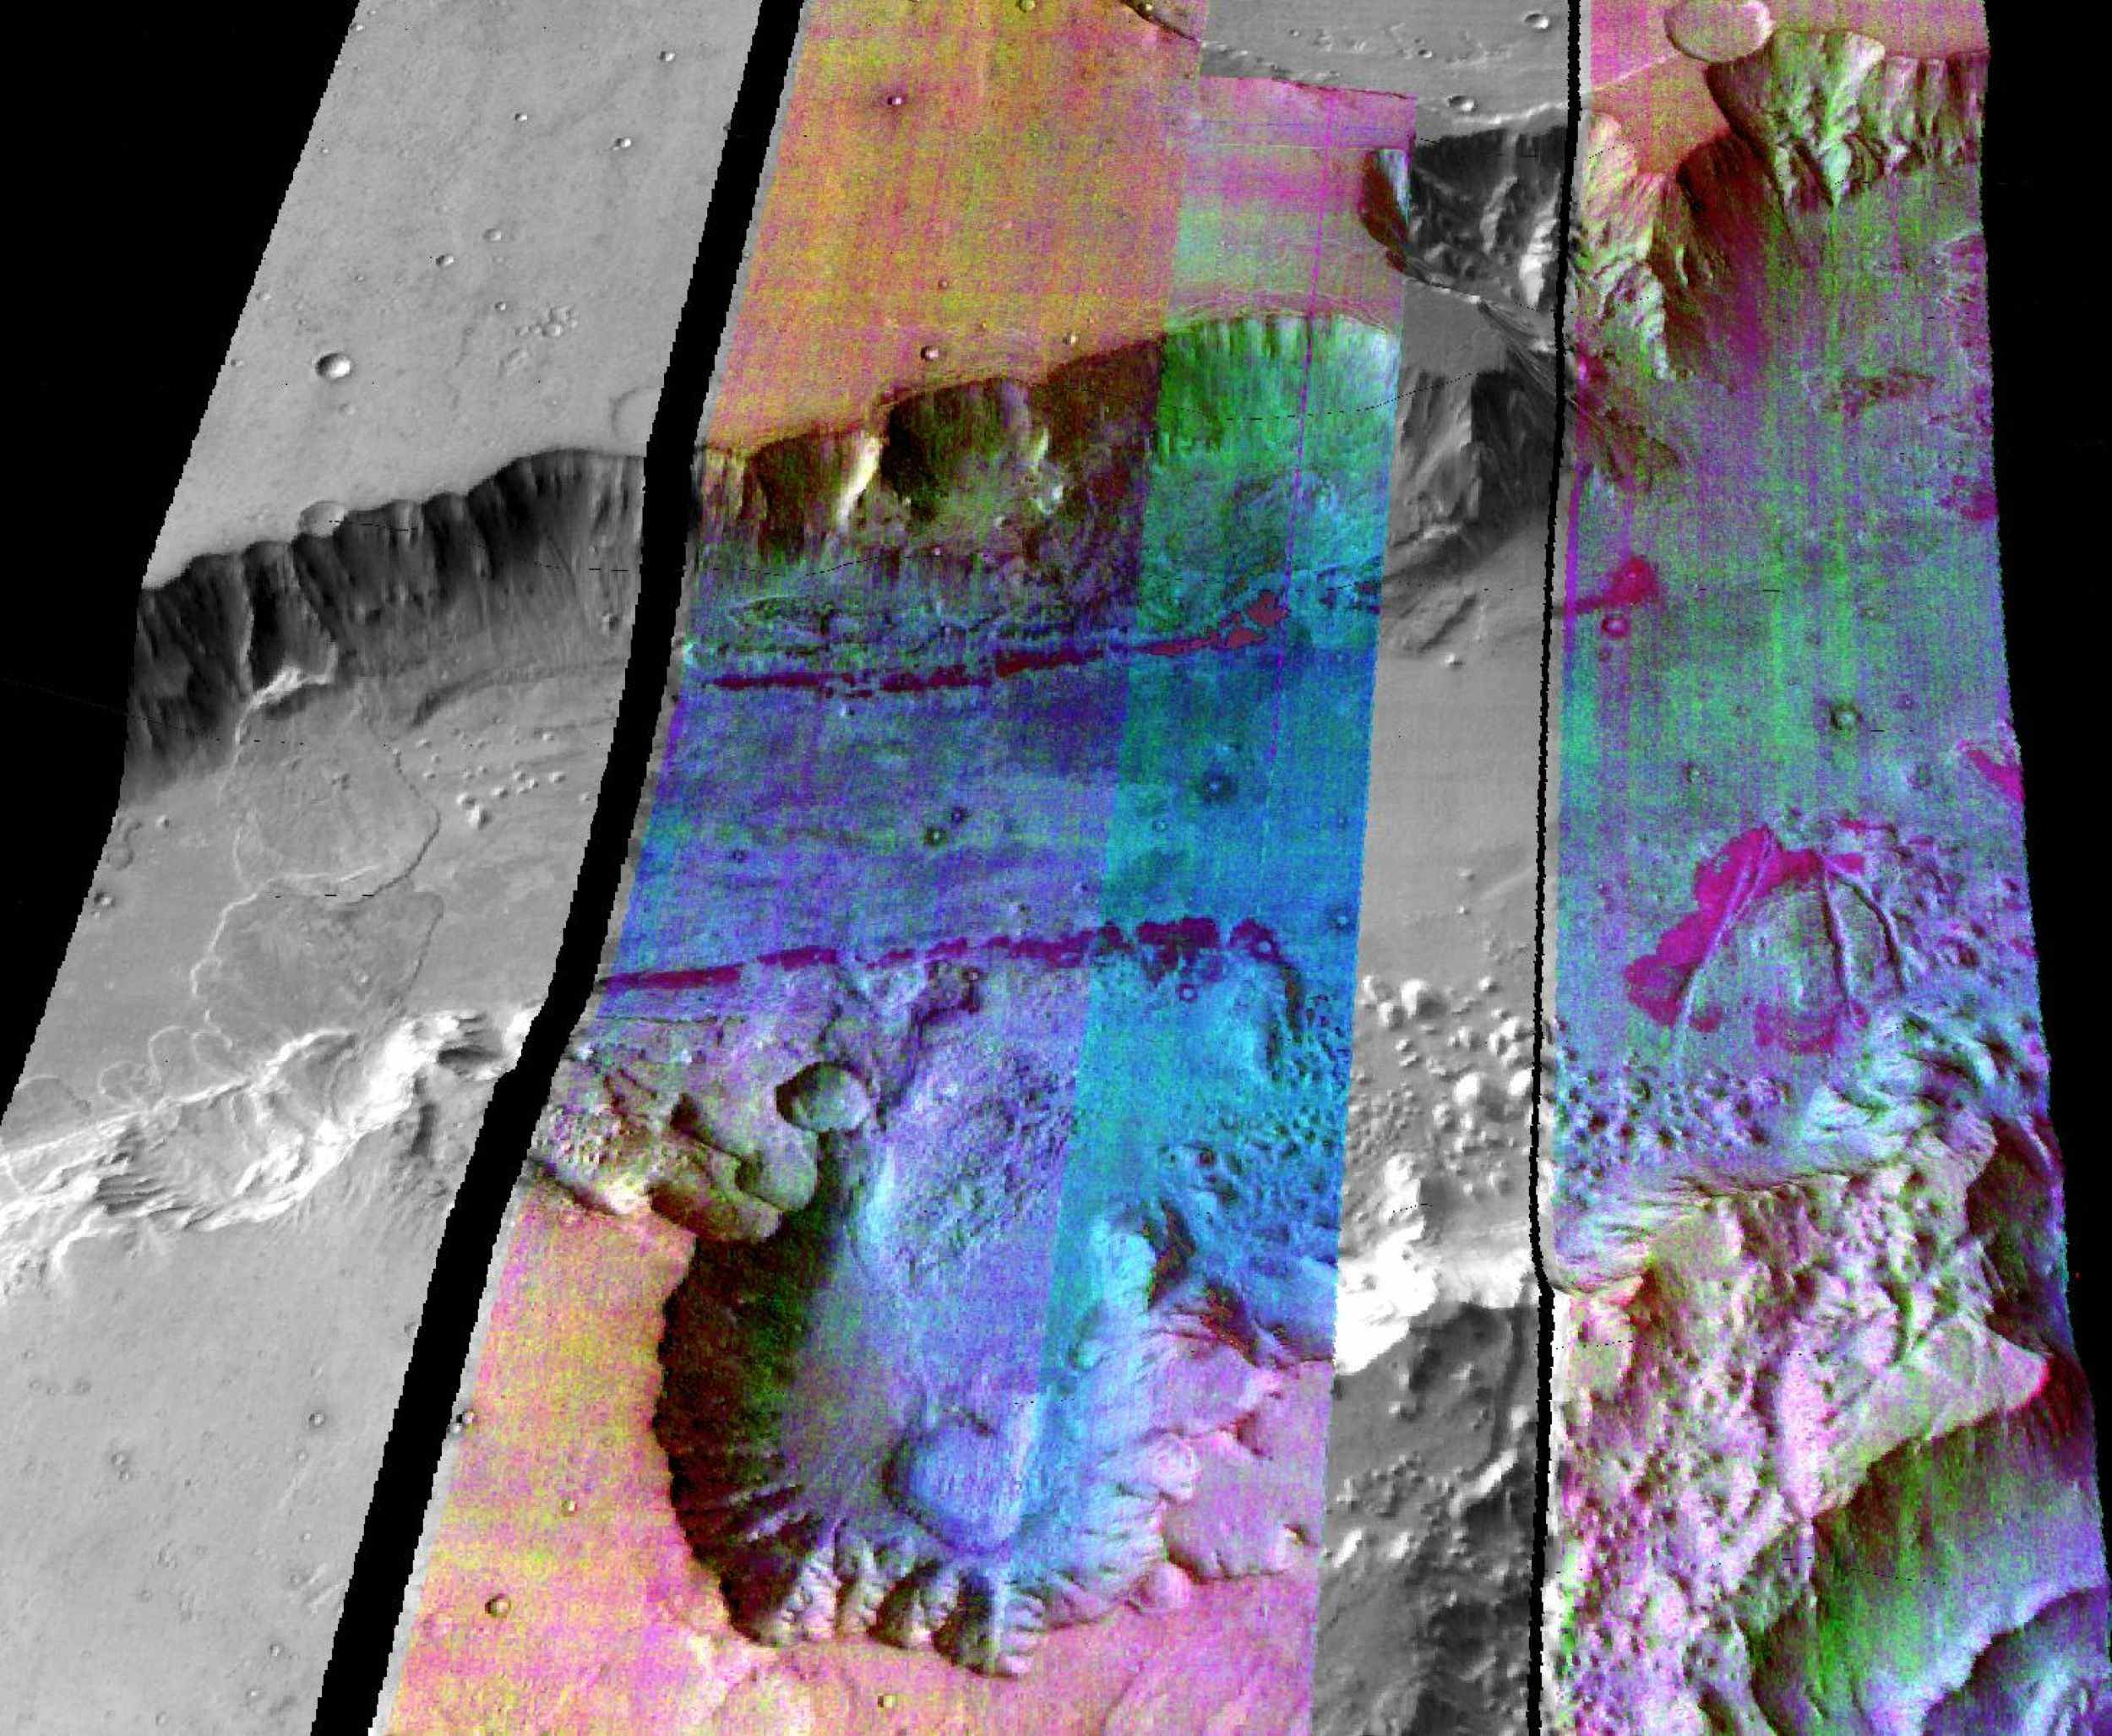 This image from NASA's Mars Odyssey spacecraft shows part of Ganges Chasma in Valles Marineris. The colors indicate compositional variations in the rocks exposed in the wall and floor of Ganges and in the dust and sand on the rim of the canyon.